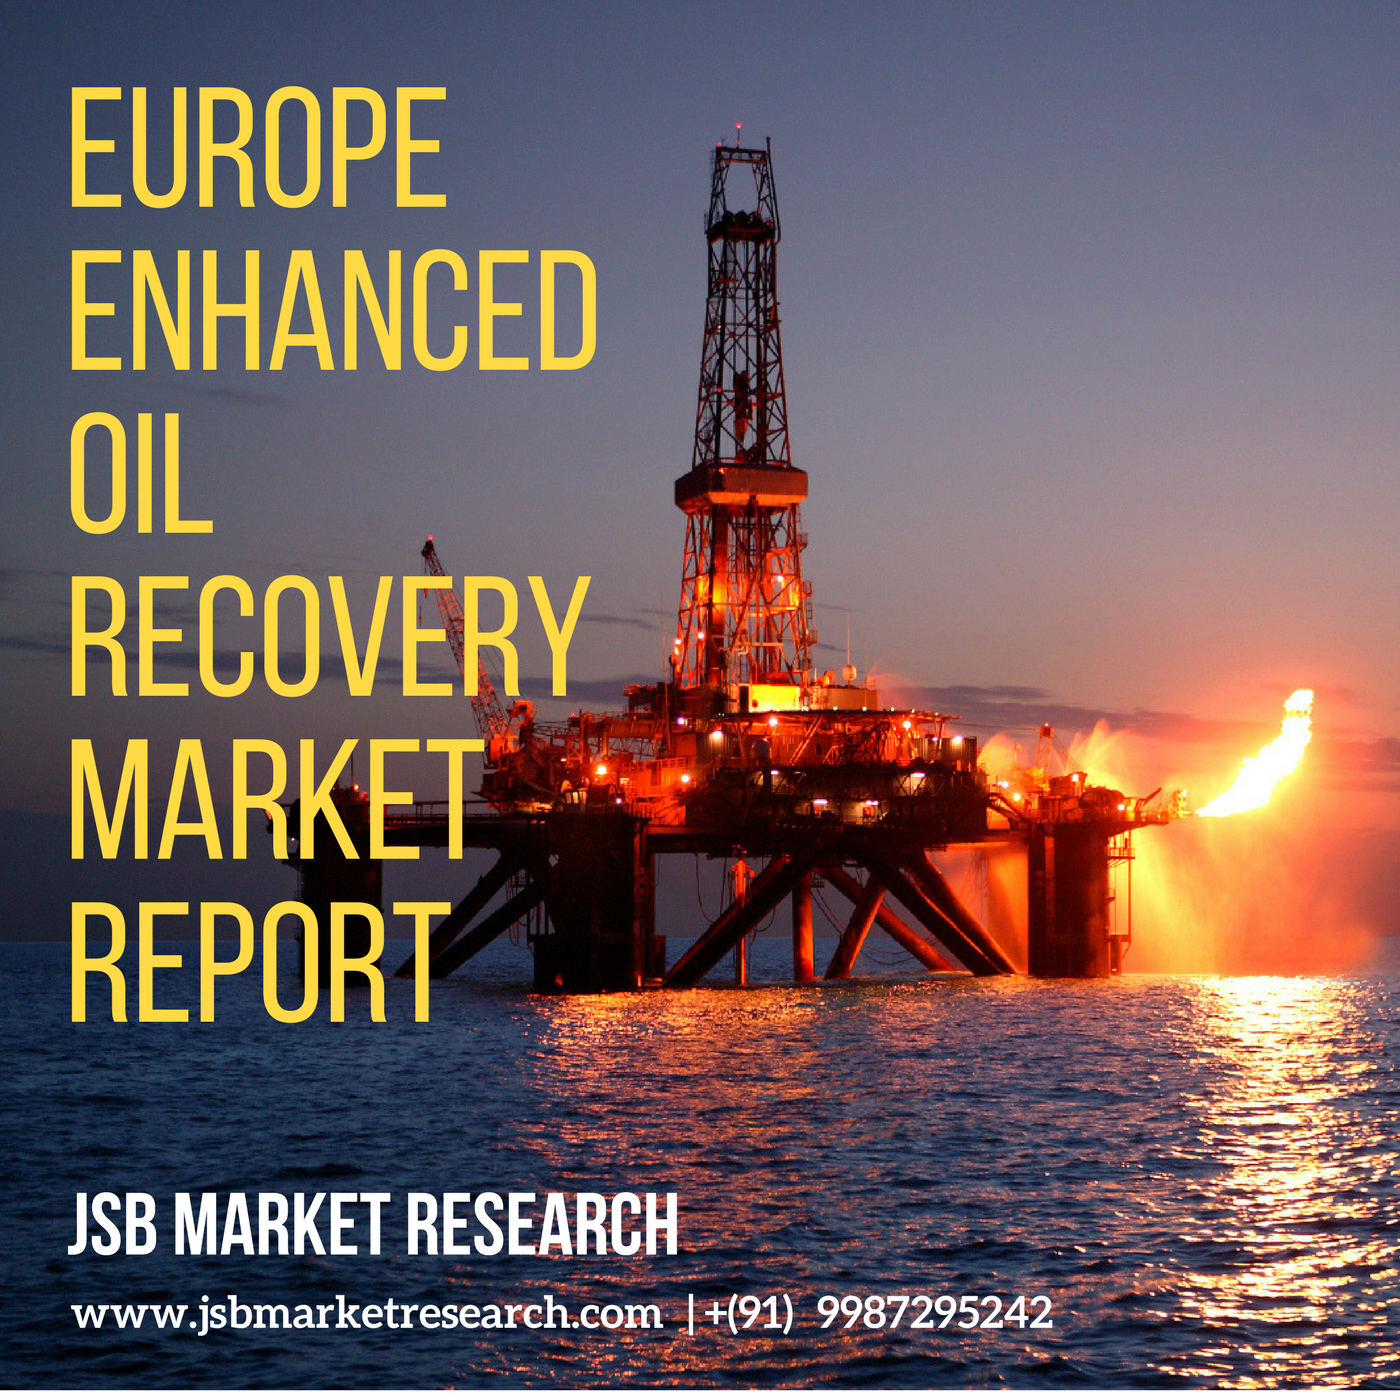 Europe Enhanced Oil Recovery Market Forecast And Opportunities